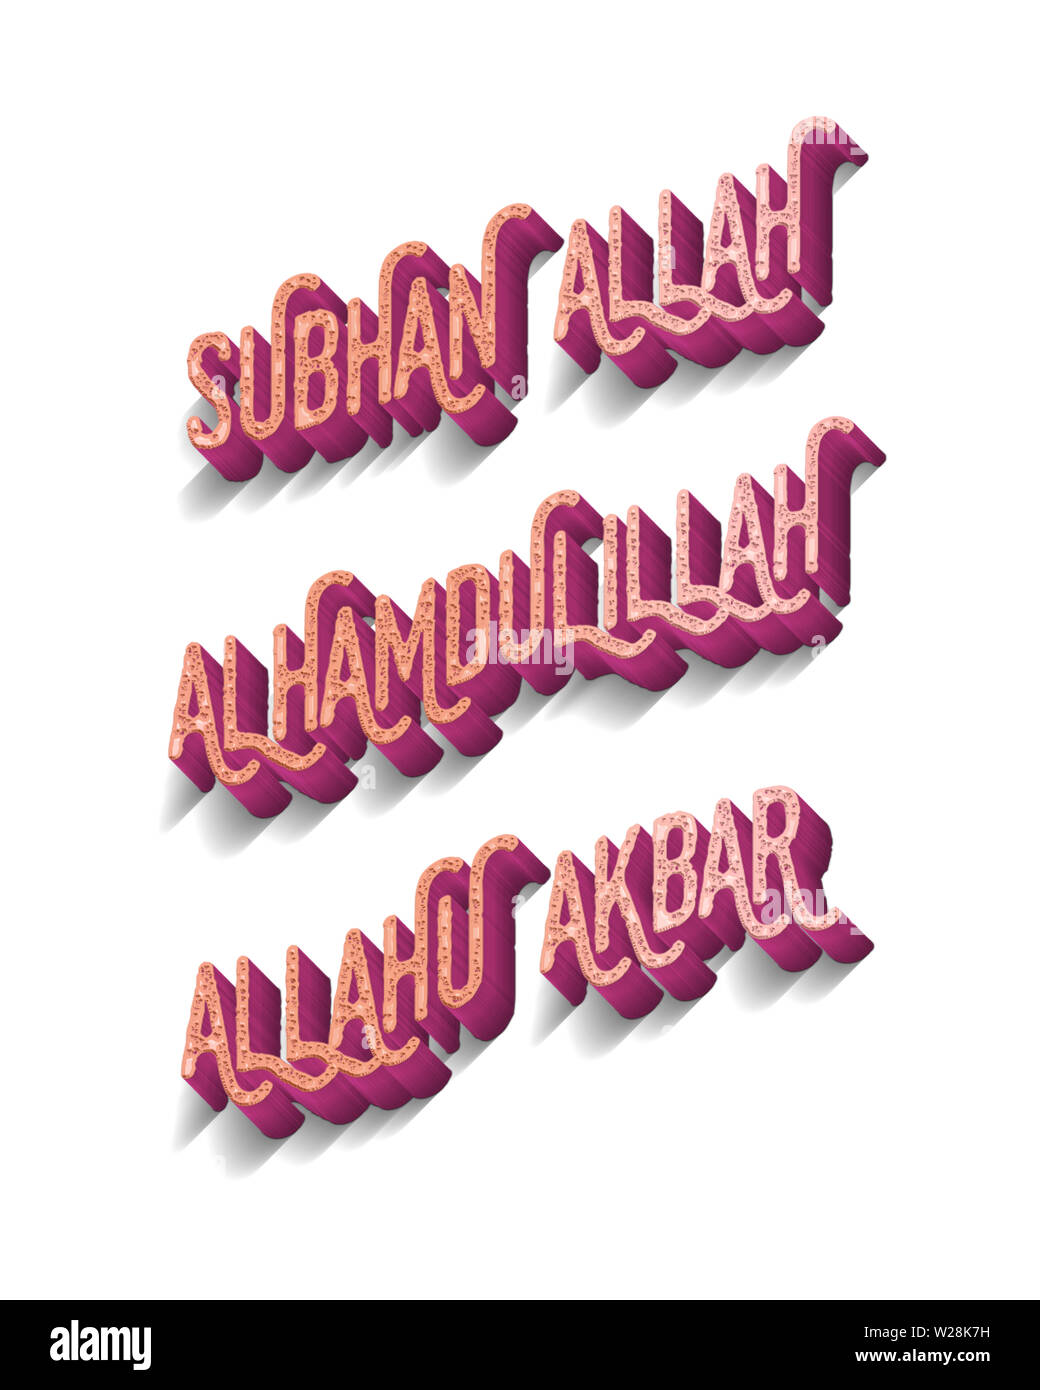 Islamic Dua Supplication for DIY printing and hframing - Stock Image